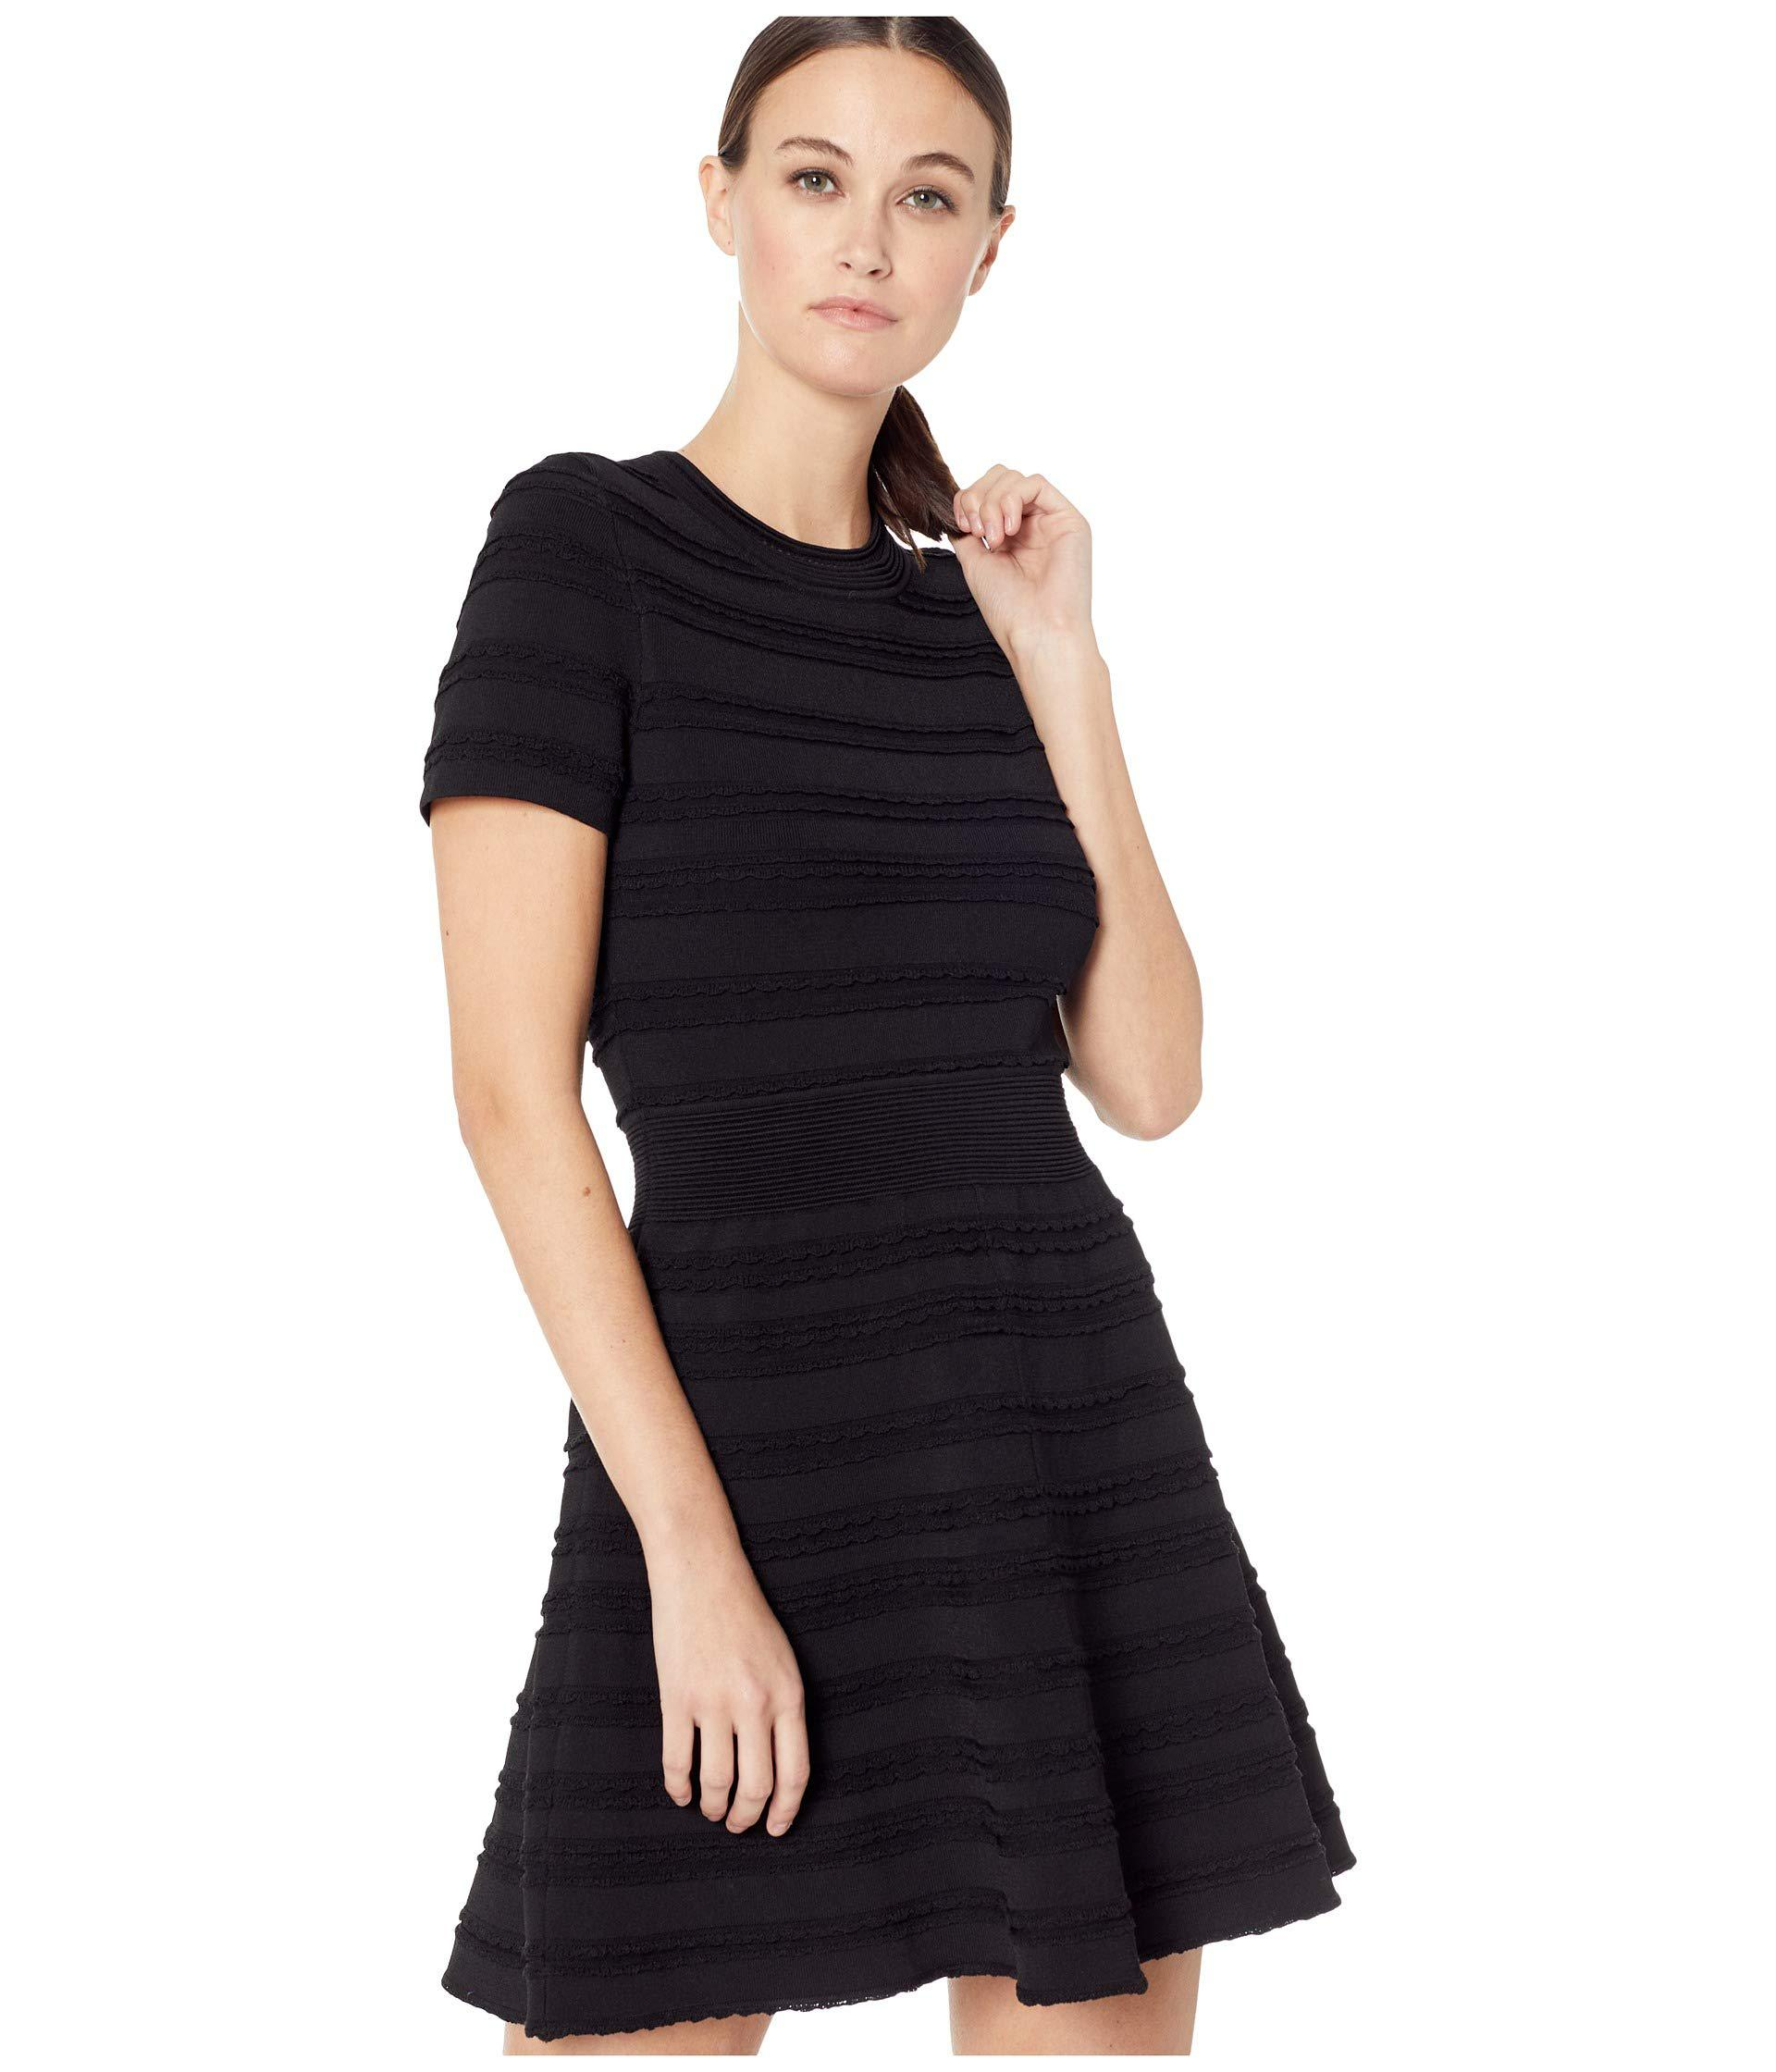 68cc4bba06878 The Kooples Horizontal-knit Dress (black) Women's Dress in Black - Lyst